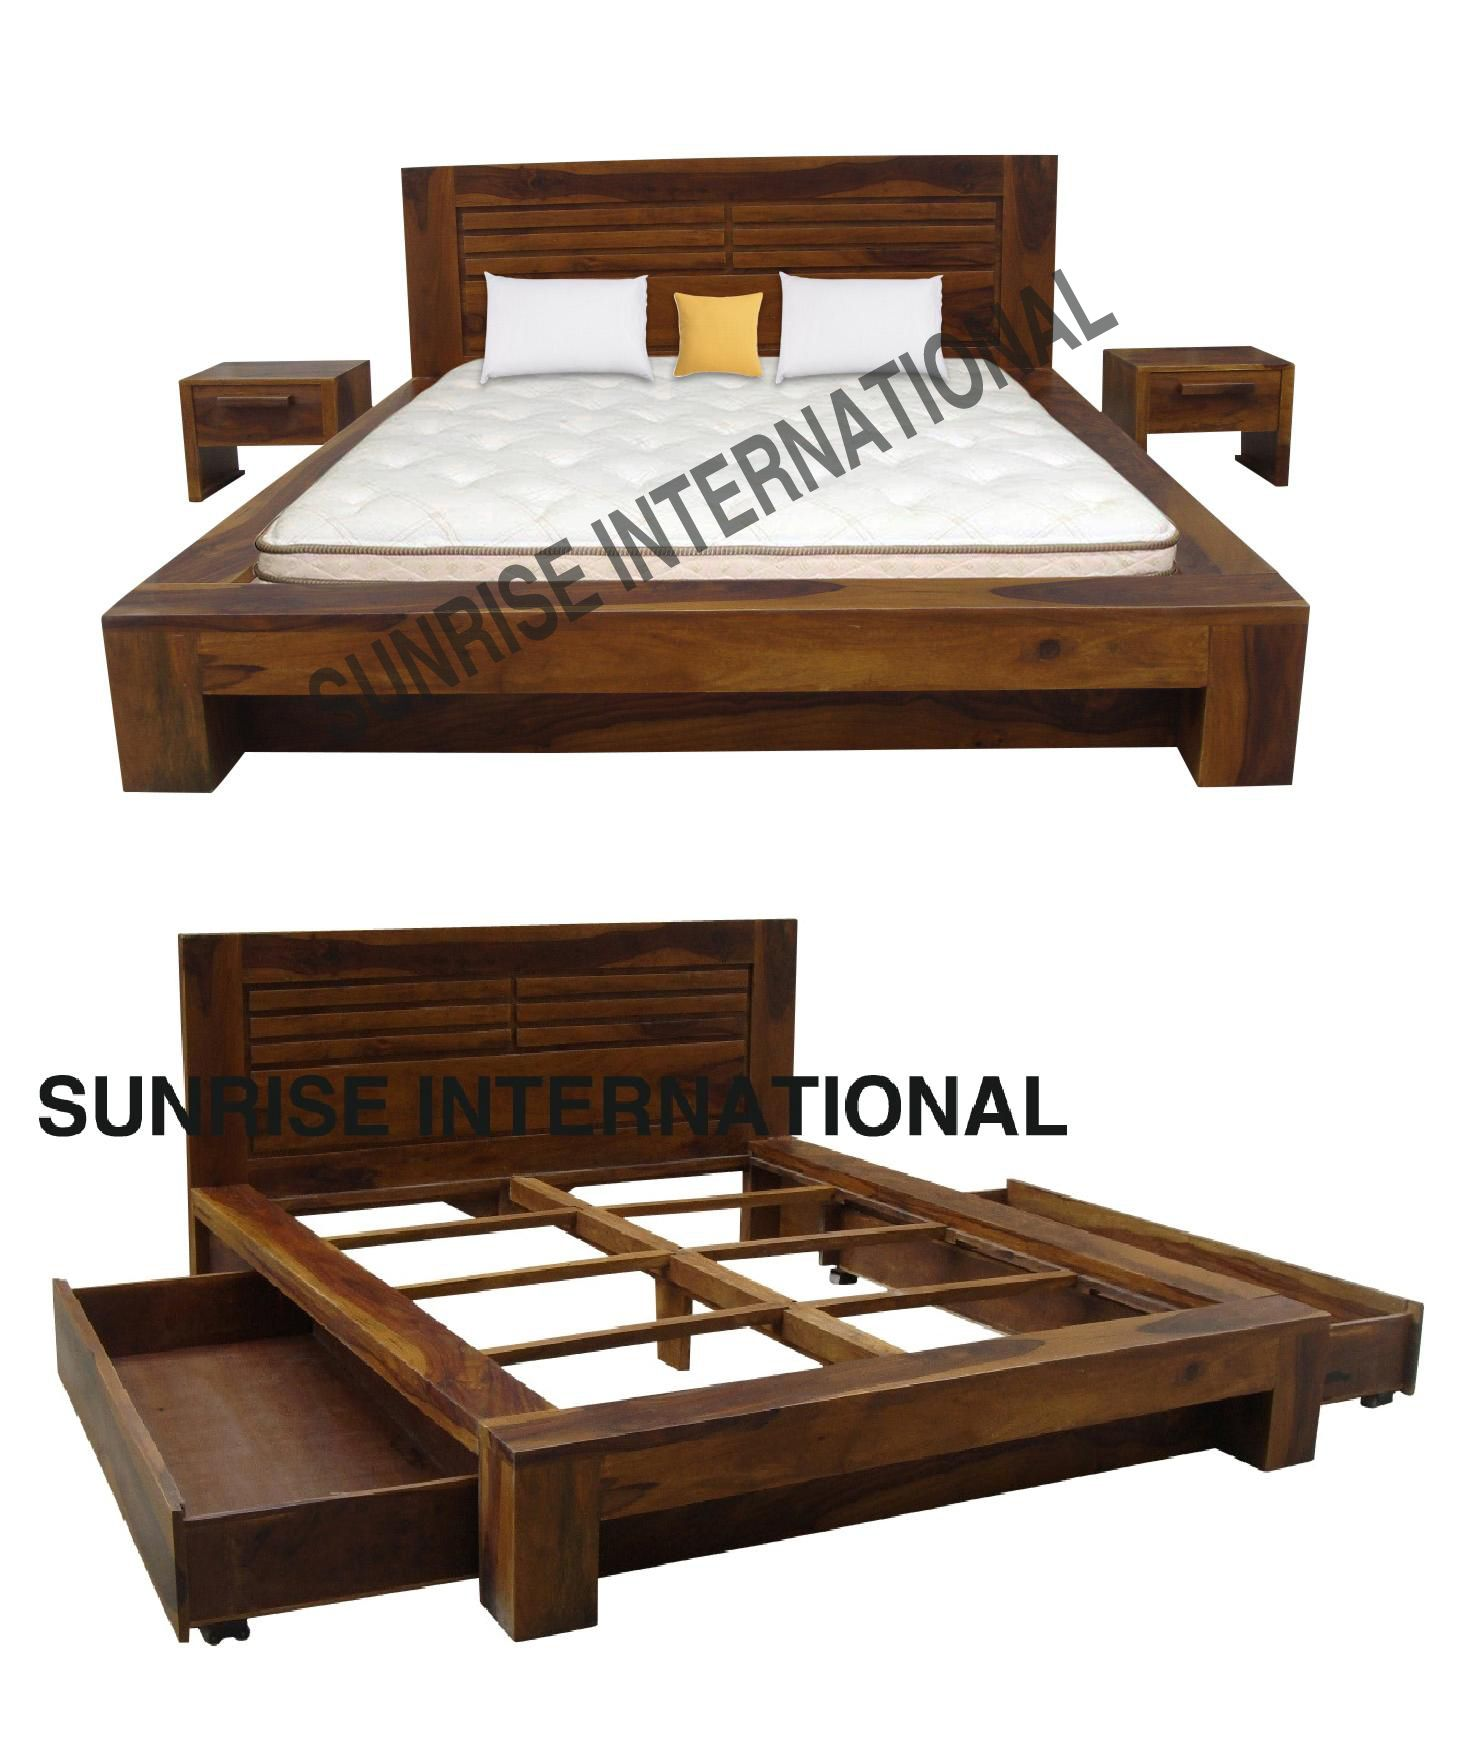 Furniture Design For Bedroom In India Cool Wooden Bed Beds Design Bedroom Furniture Designsindia Email Design Decoration